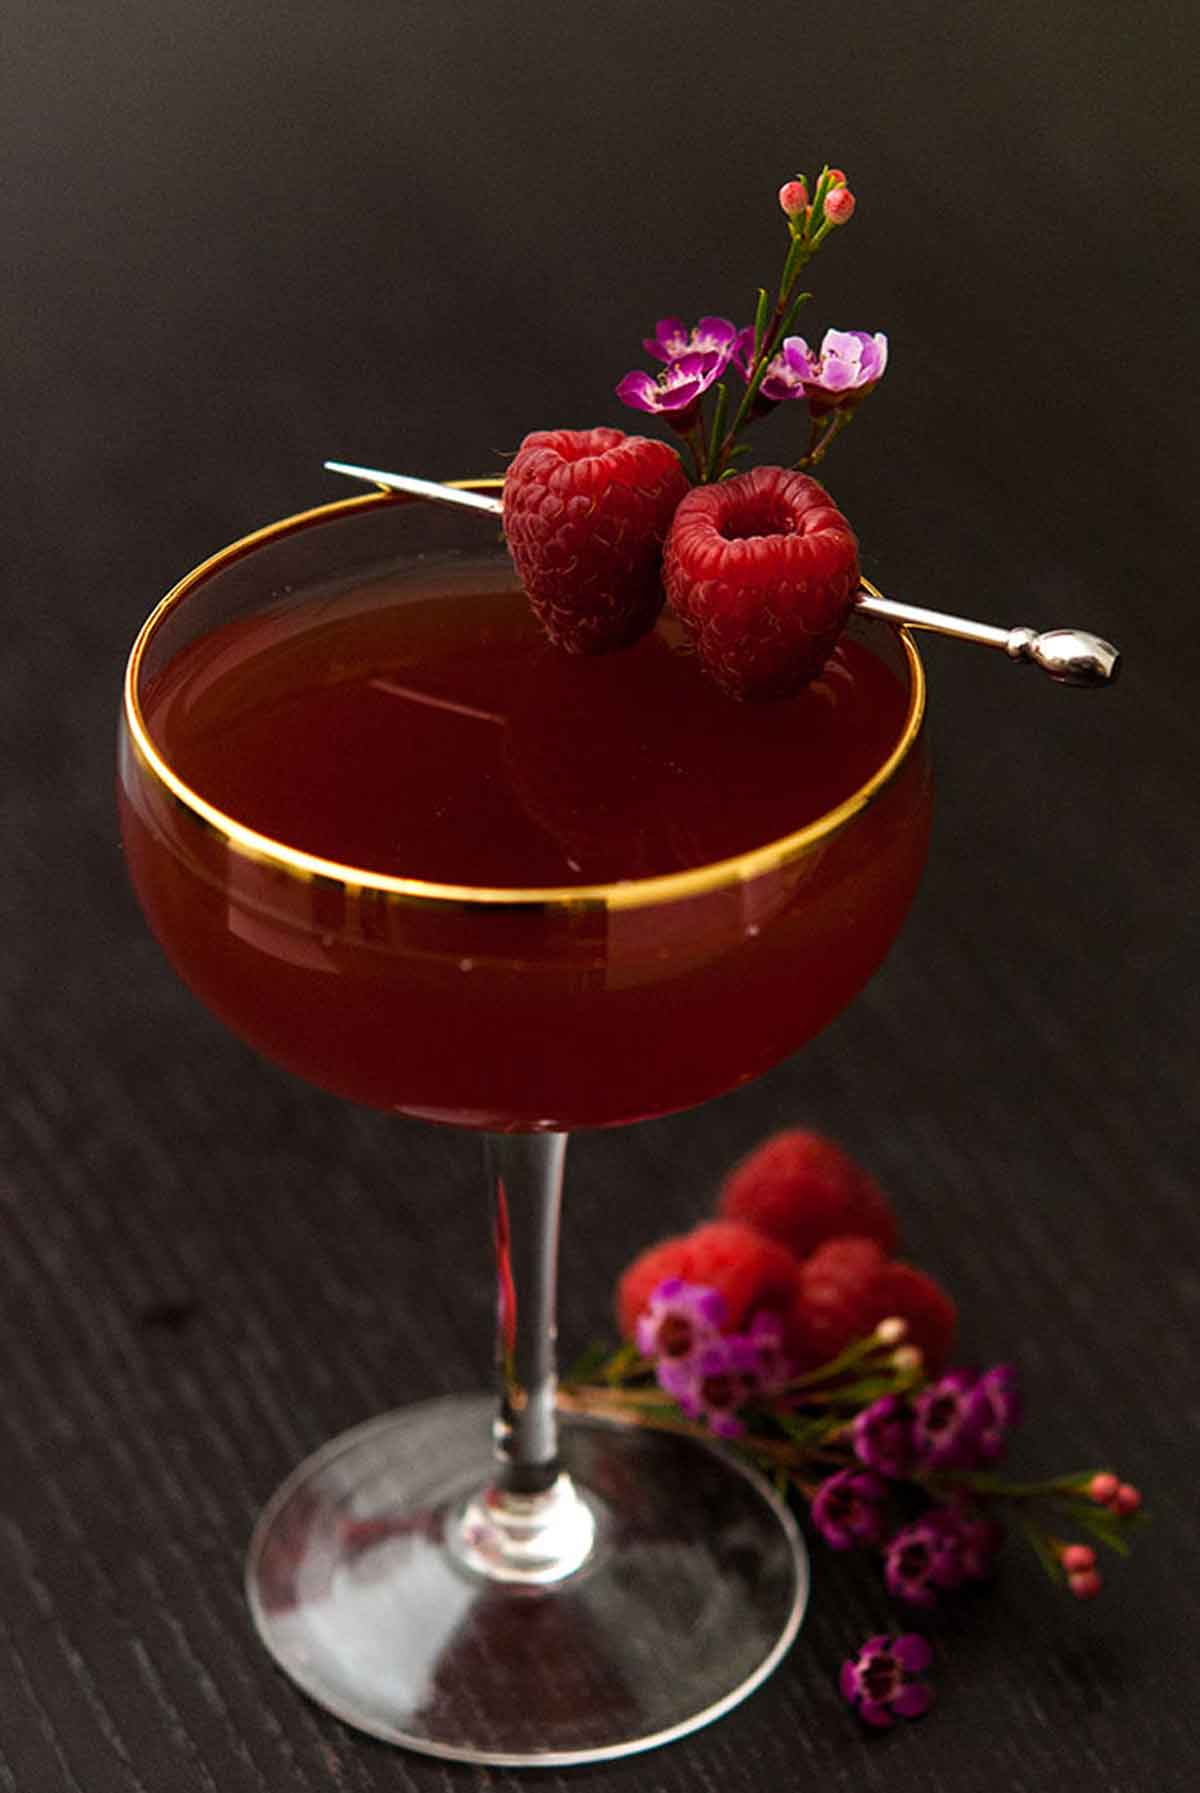 A cocktail on a dark table garnished with raspberries and small flowers, with a few raspberries and flowers at its base.